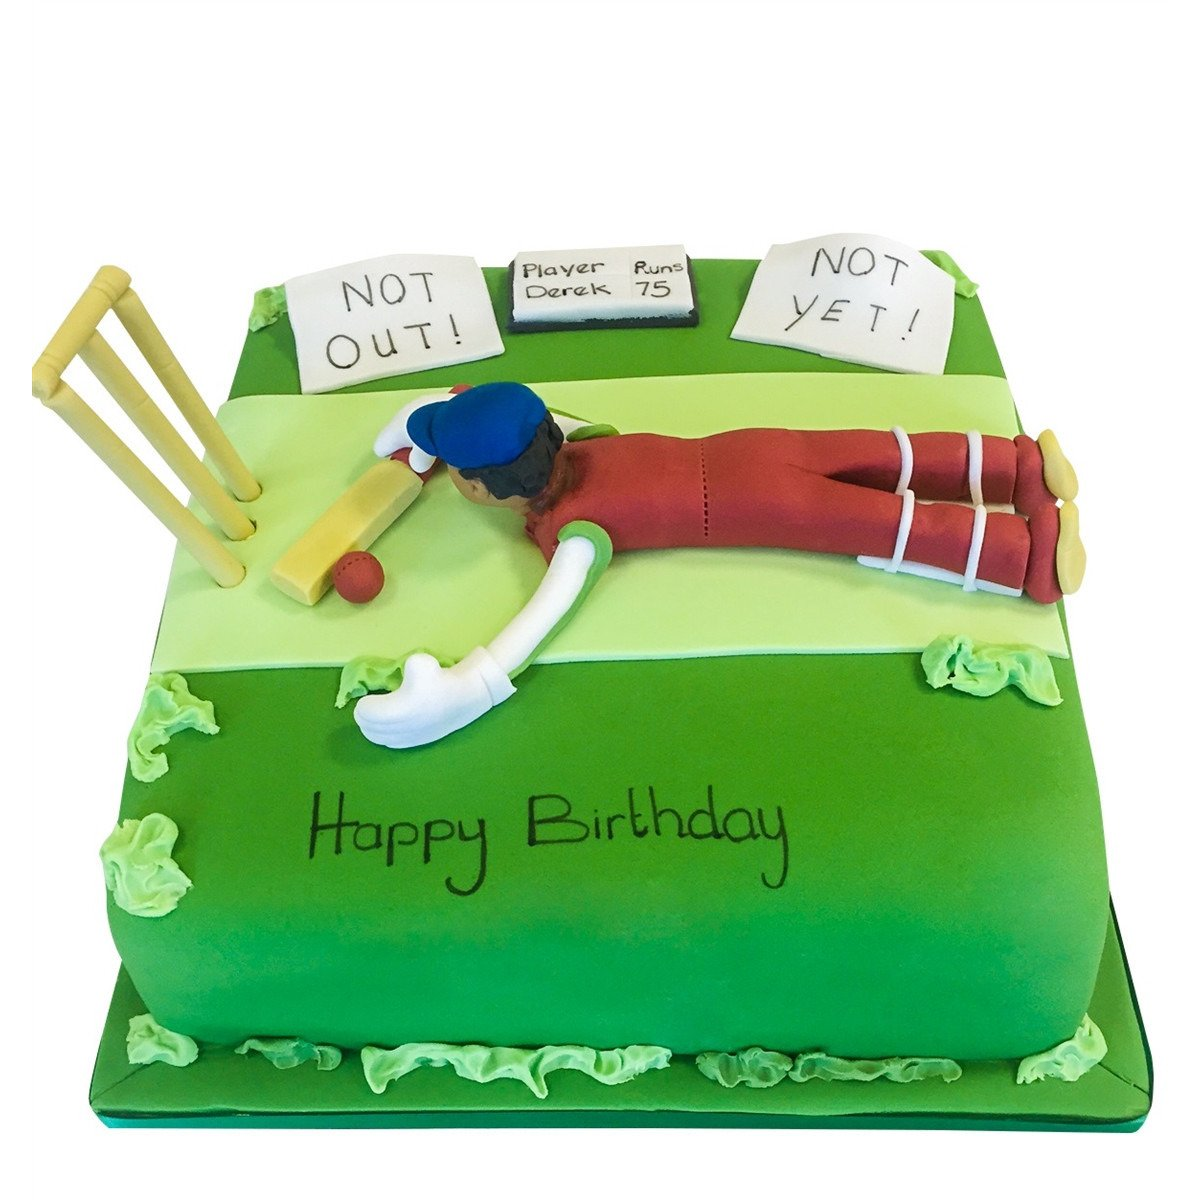 THM010 - Cricket Cake